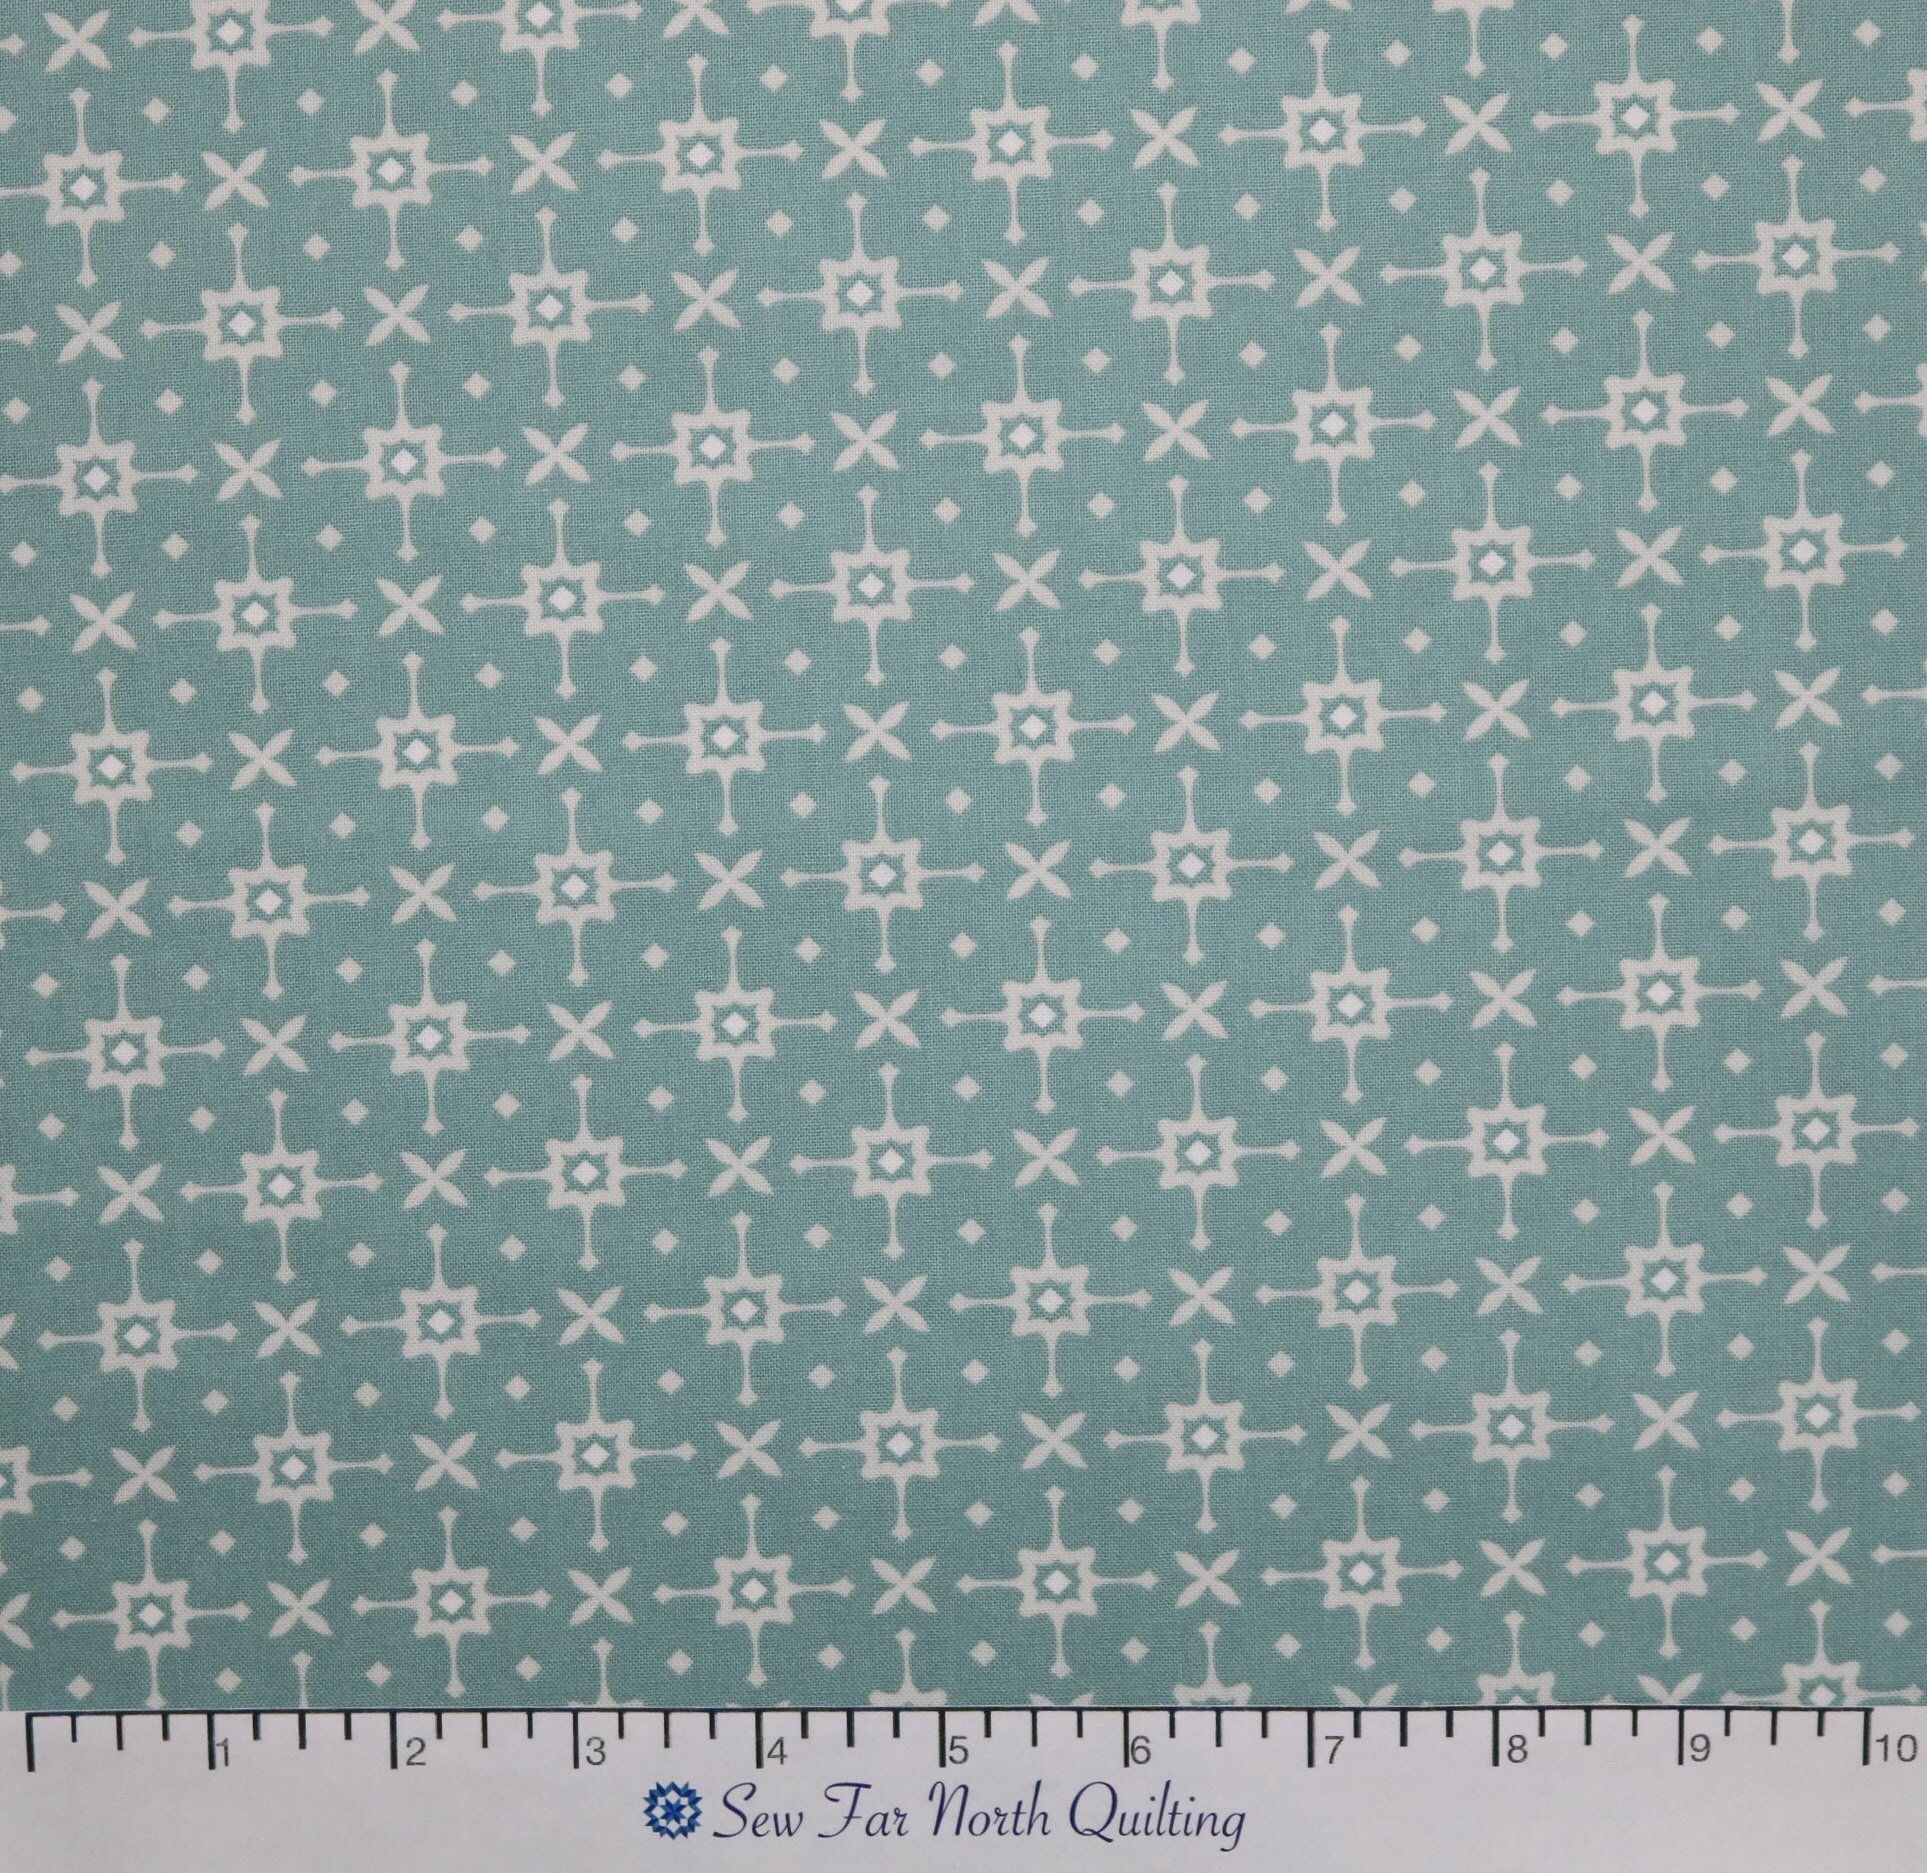 Benartex Fabrics Liberty Geo Turquoise Fabric Liberty Garden Green Teal White Cotton Quilting Sewing Apparel Craft Fabric by the Yard